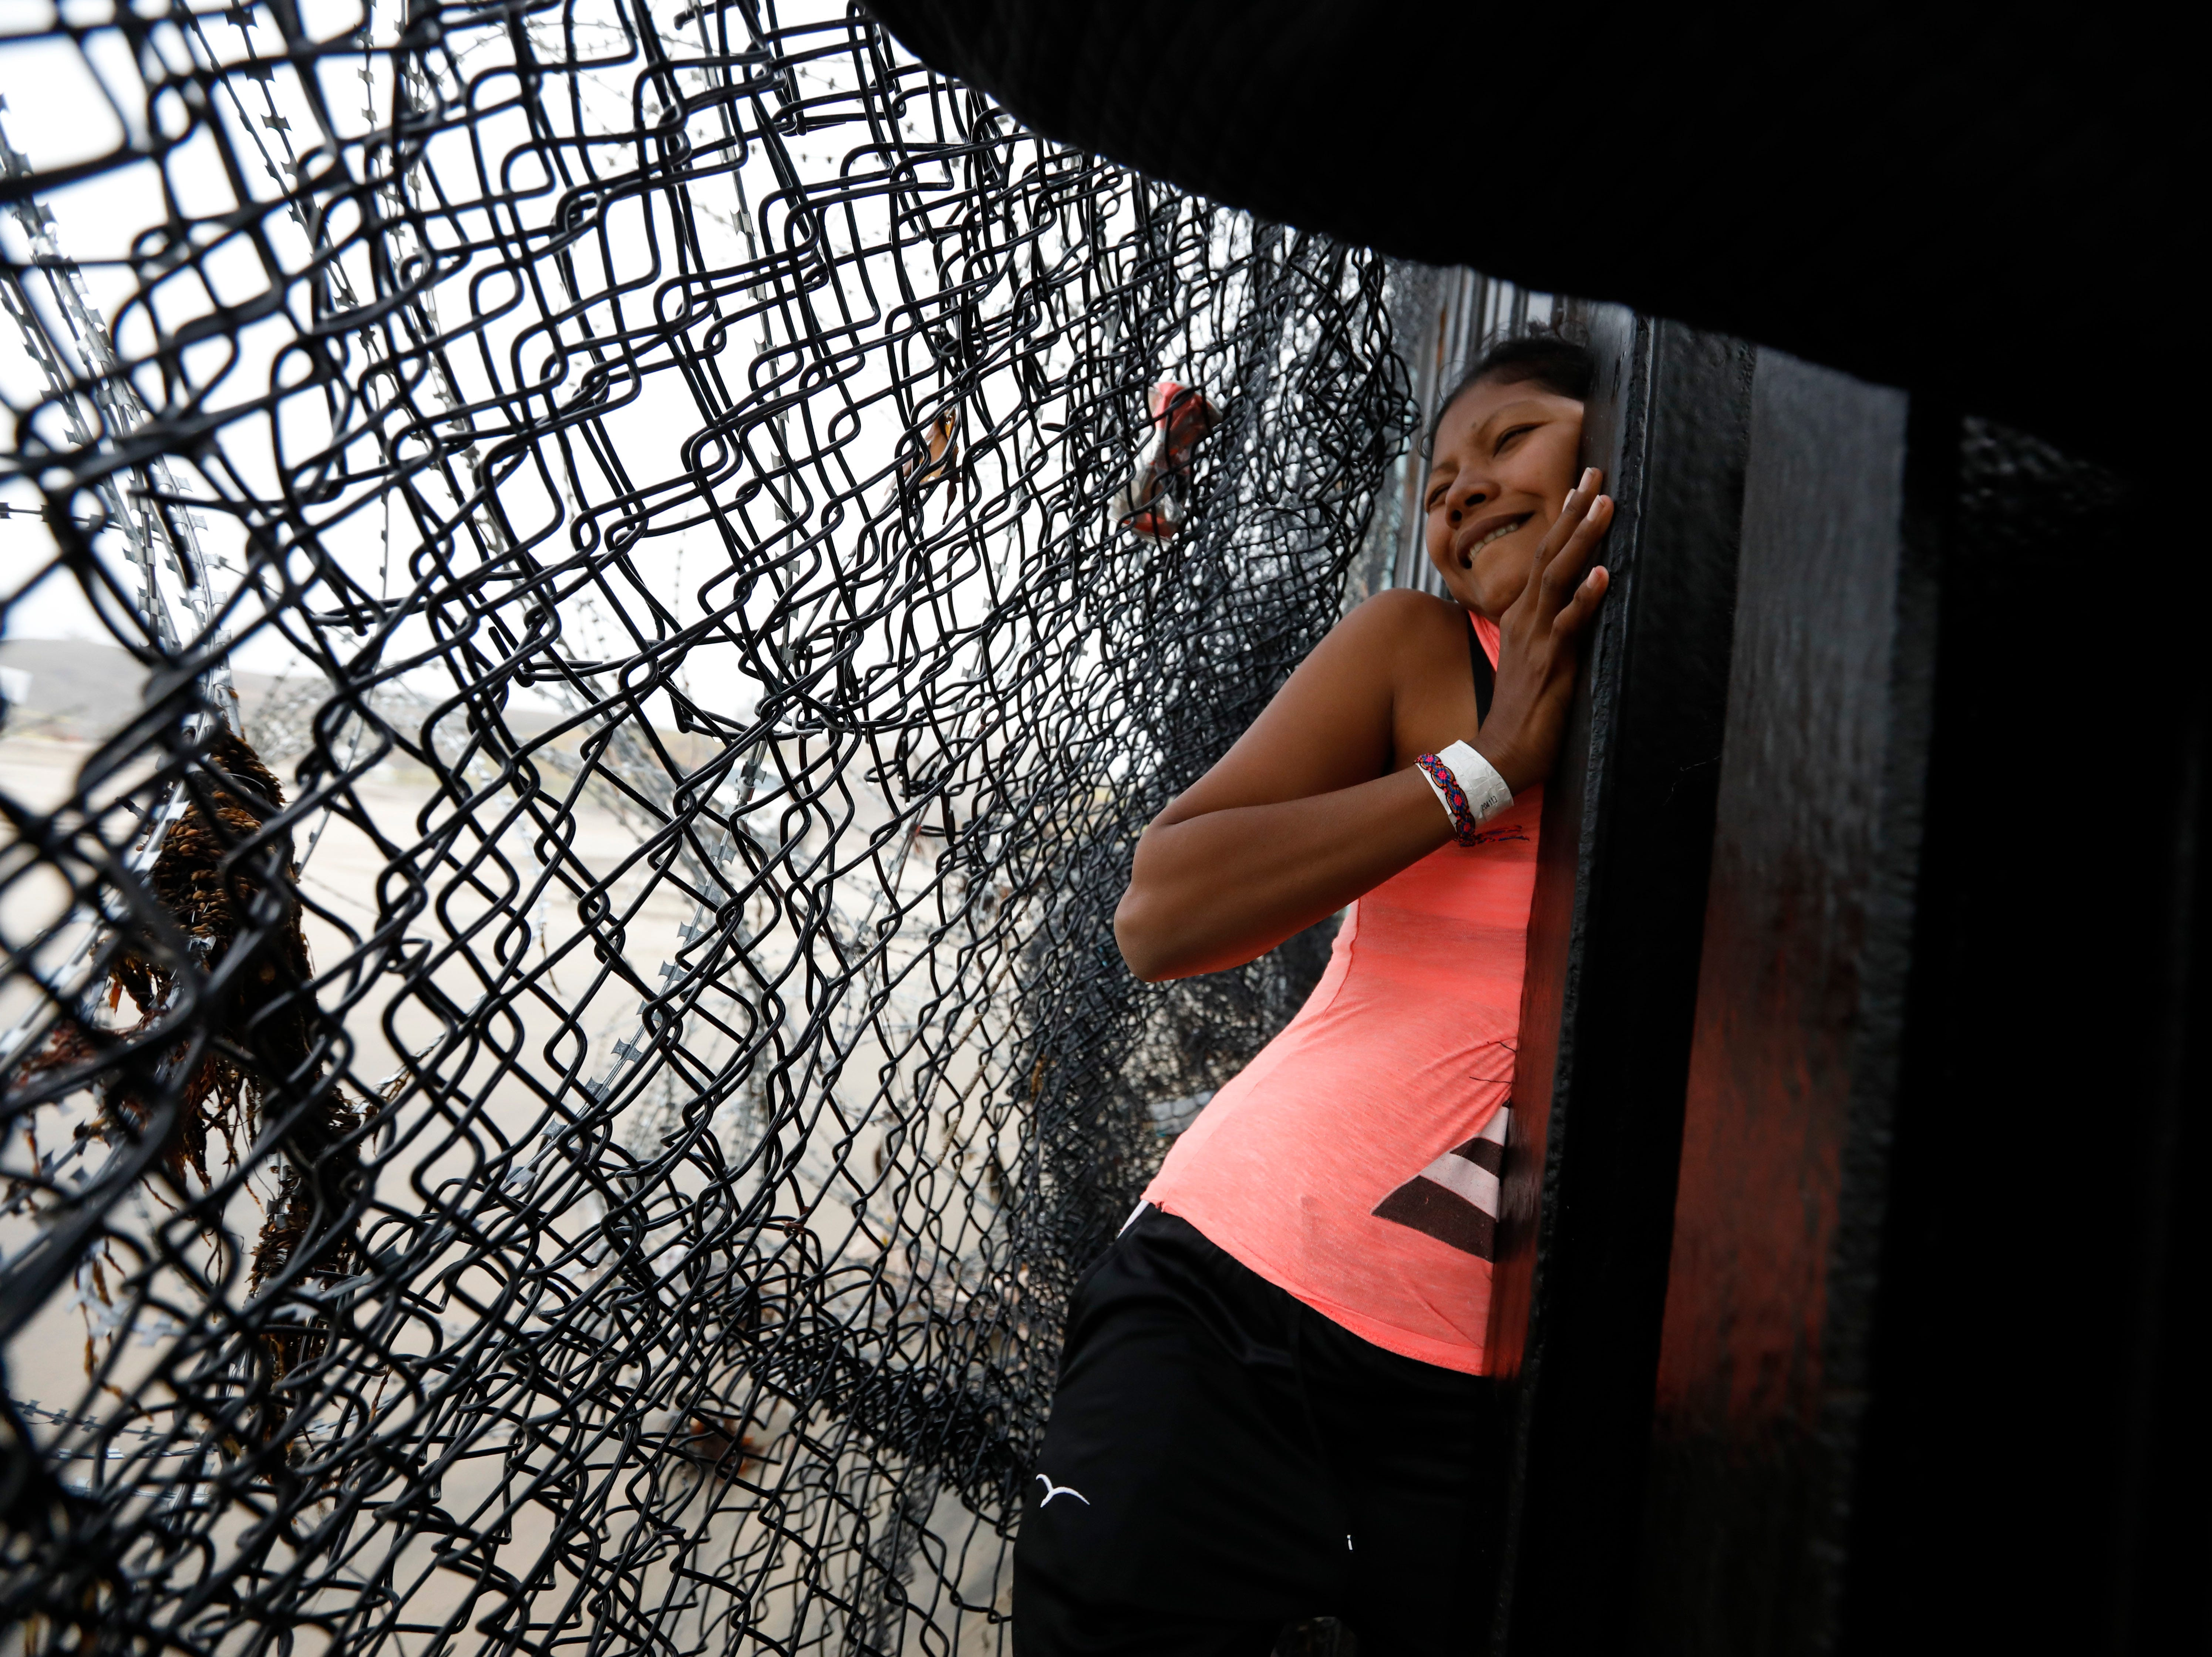 A Honduran migrant, followed by her daughter, squeezes through a gap in the U.S. border wall from Tijuana, Mexico, onto U.S. soil near Imperial Beach, Calif., Sunday, Dec. 9, 2018. Discouraged by the long wait to apply for asylum through official ports of entry, many Central American migrants from recent caravans are choosing to cross the U.S. border wall illegally and hand themselves in to Border Patrol agents to request asylum.